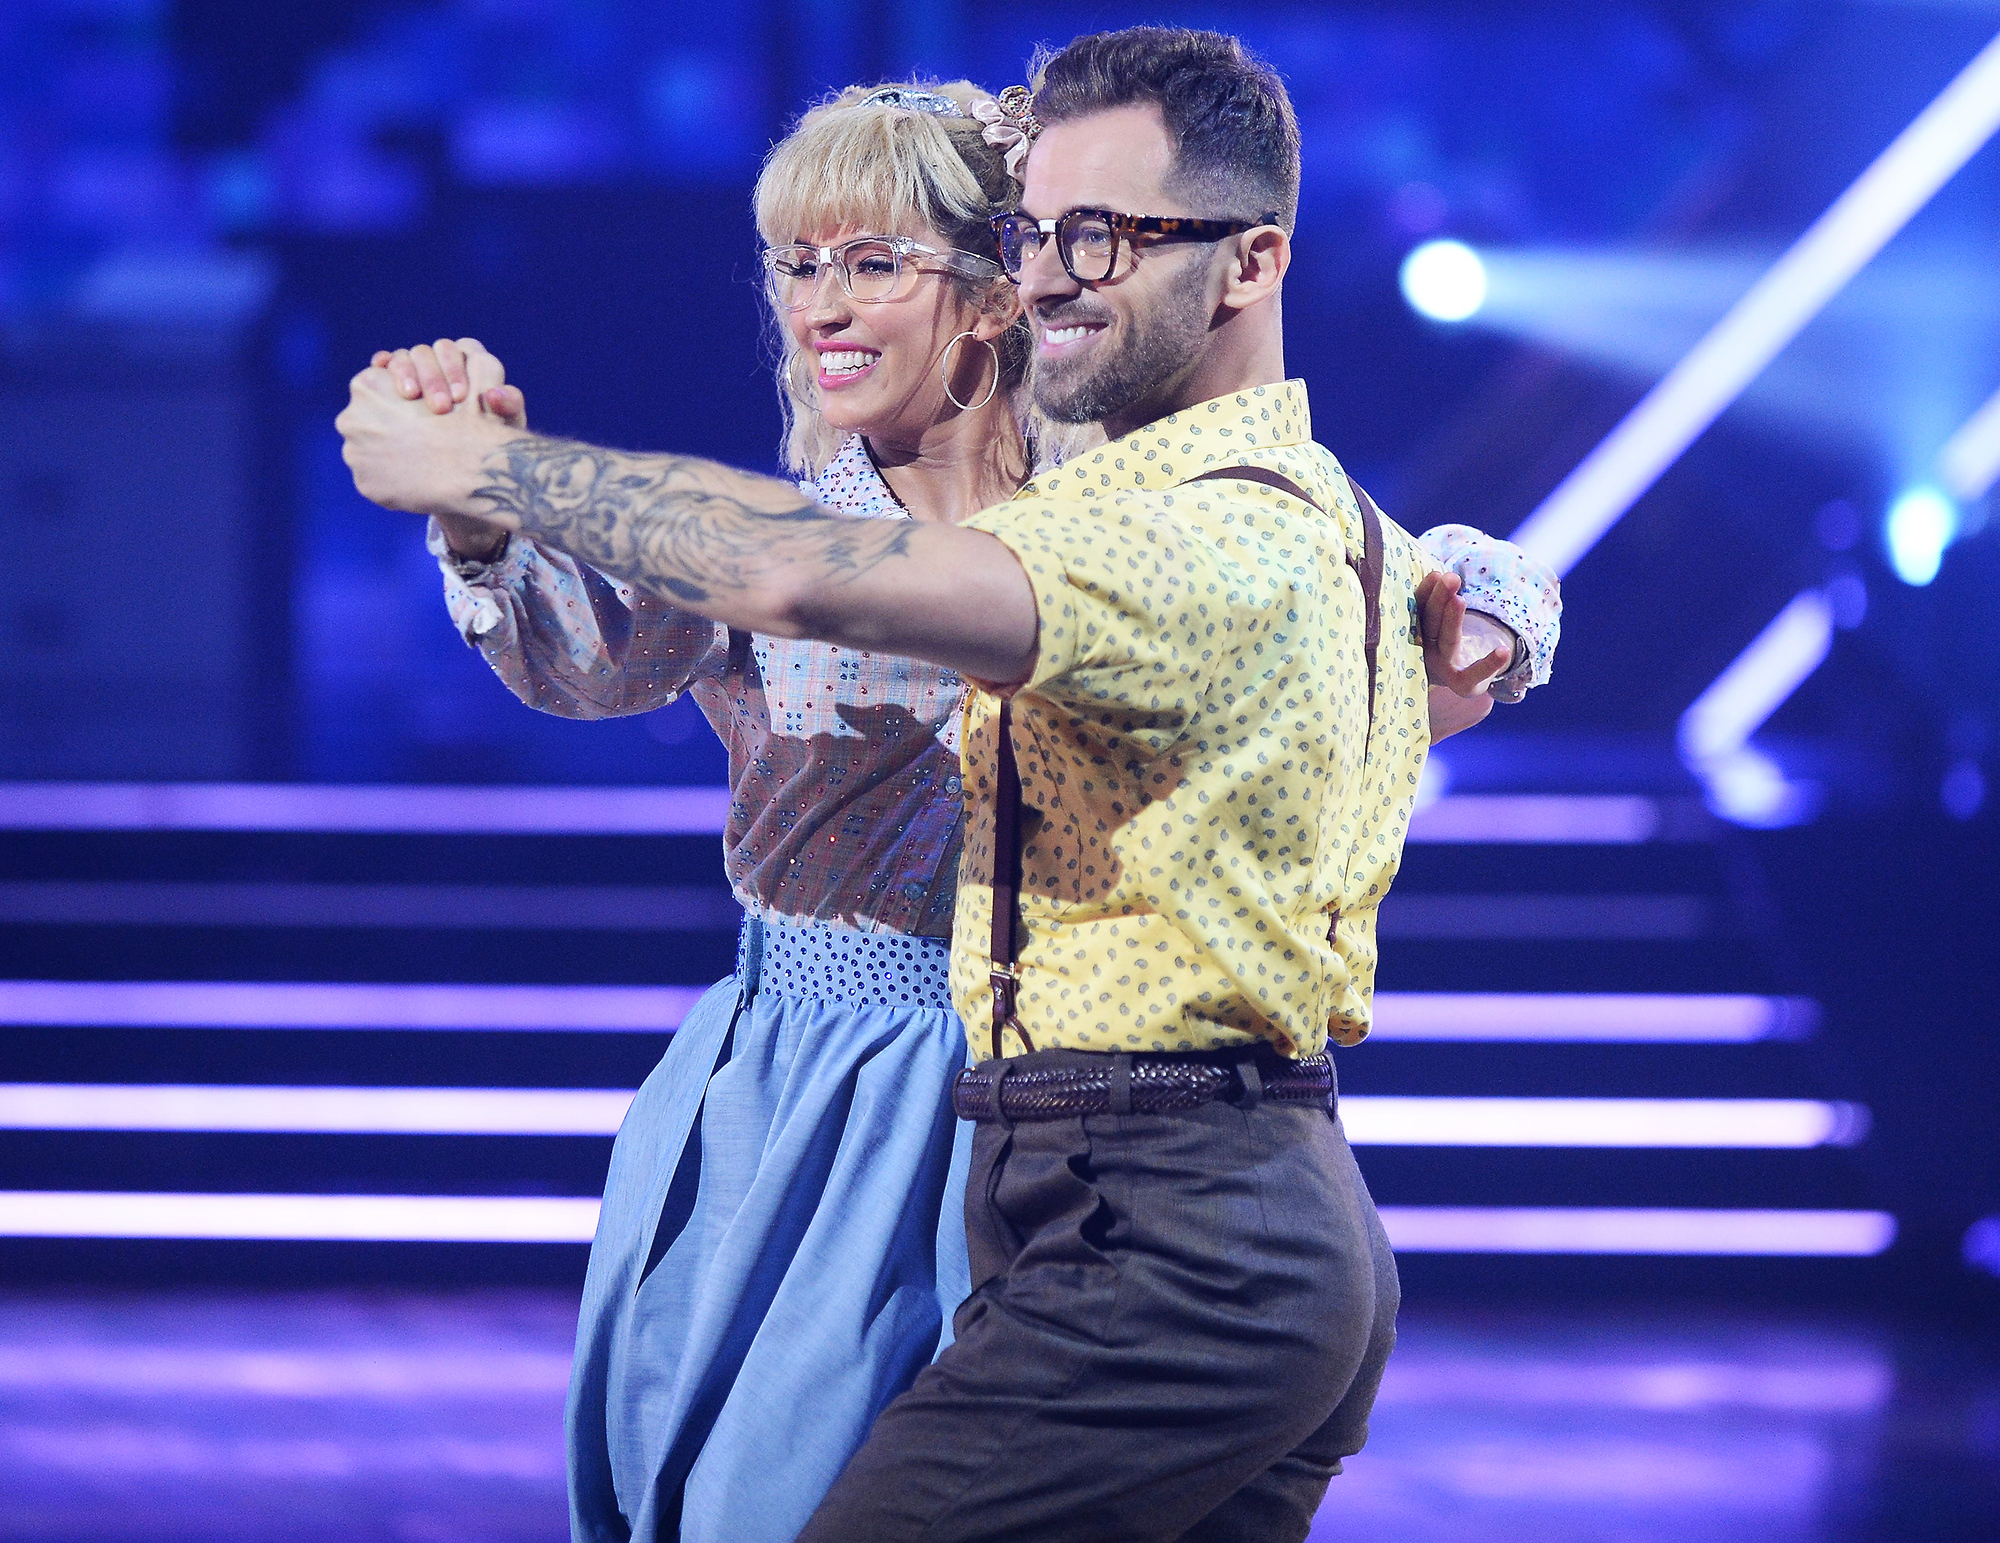 'DWTS' Recap: Another Pair Gets Sent Home After Shocking Bottom 2